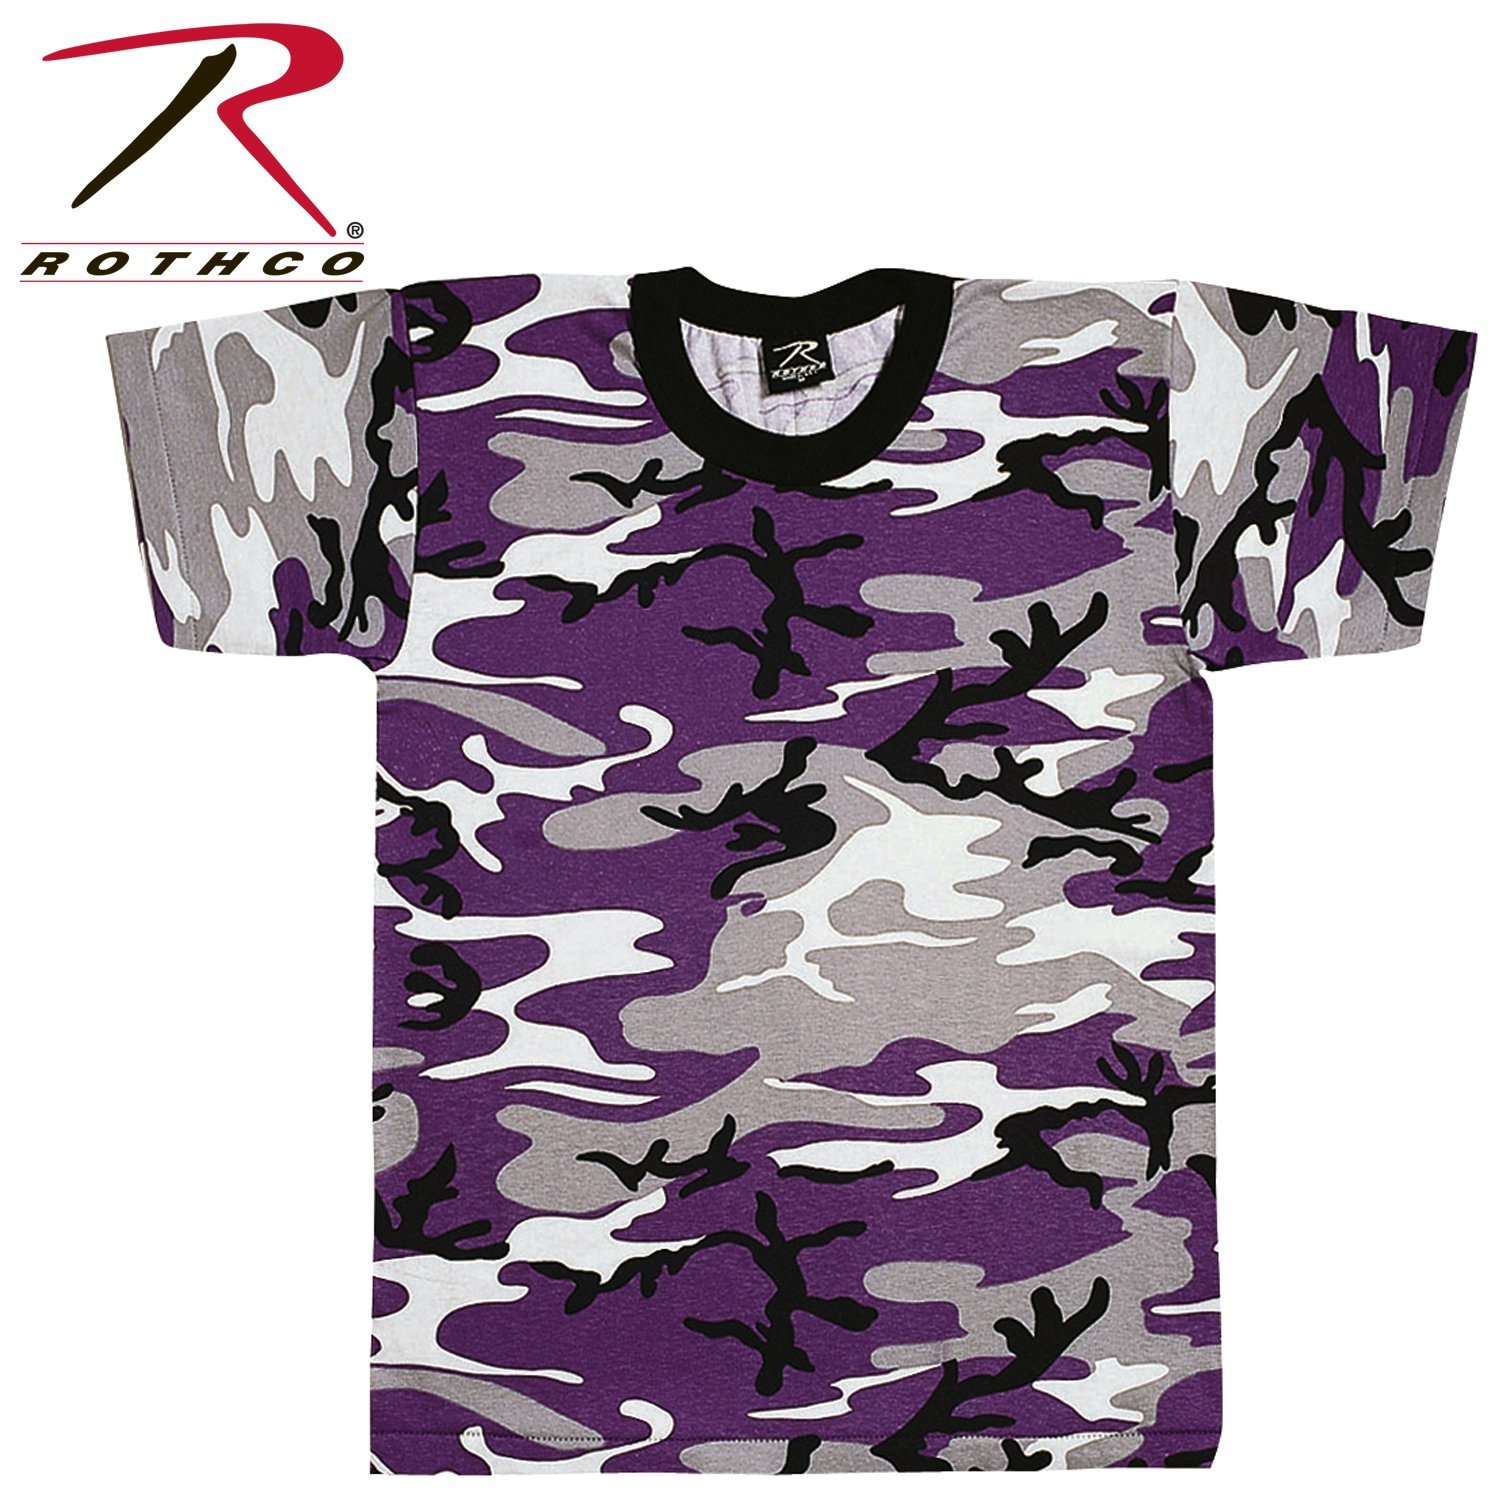 Ultra Violet Camouflage T-shirt by Rothco